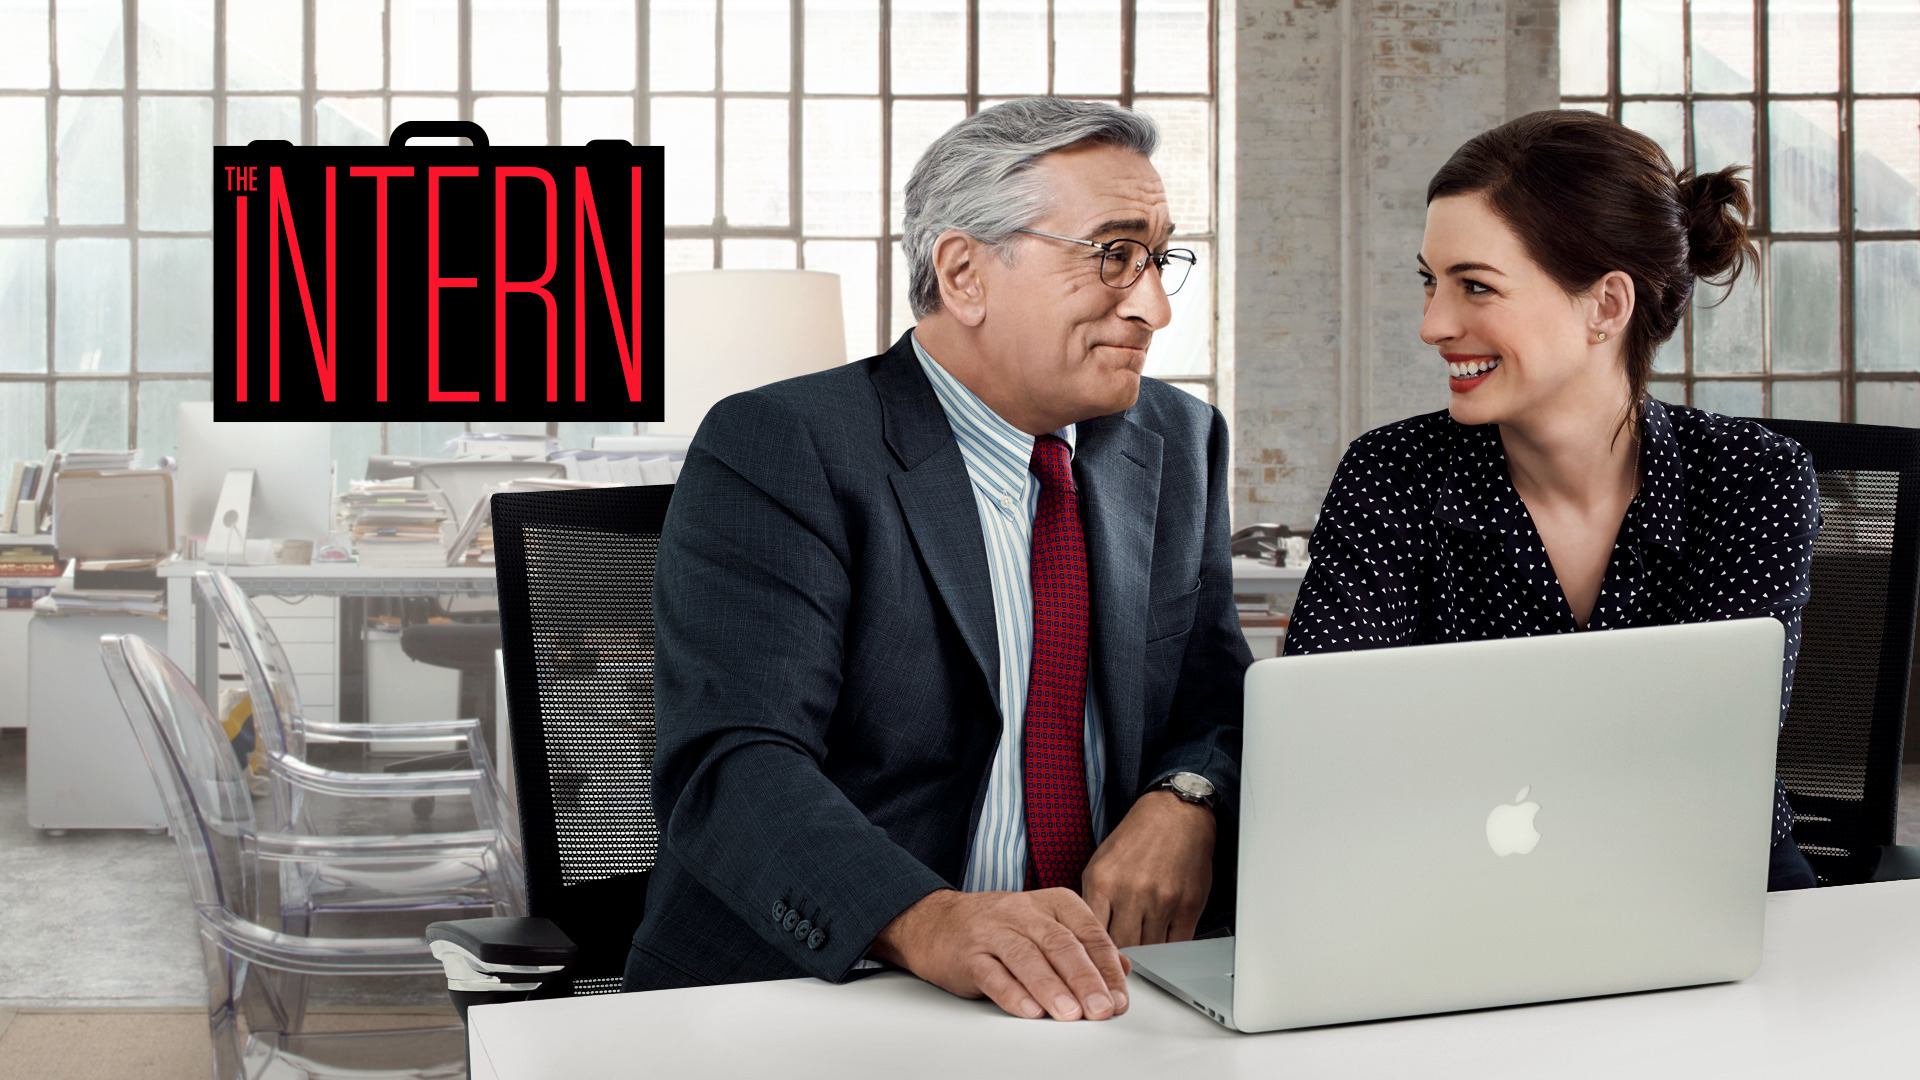 The Intern Movie Wallpaper 56903 1920x1080px